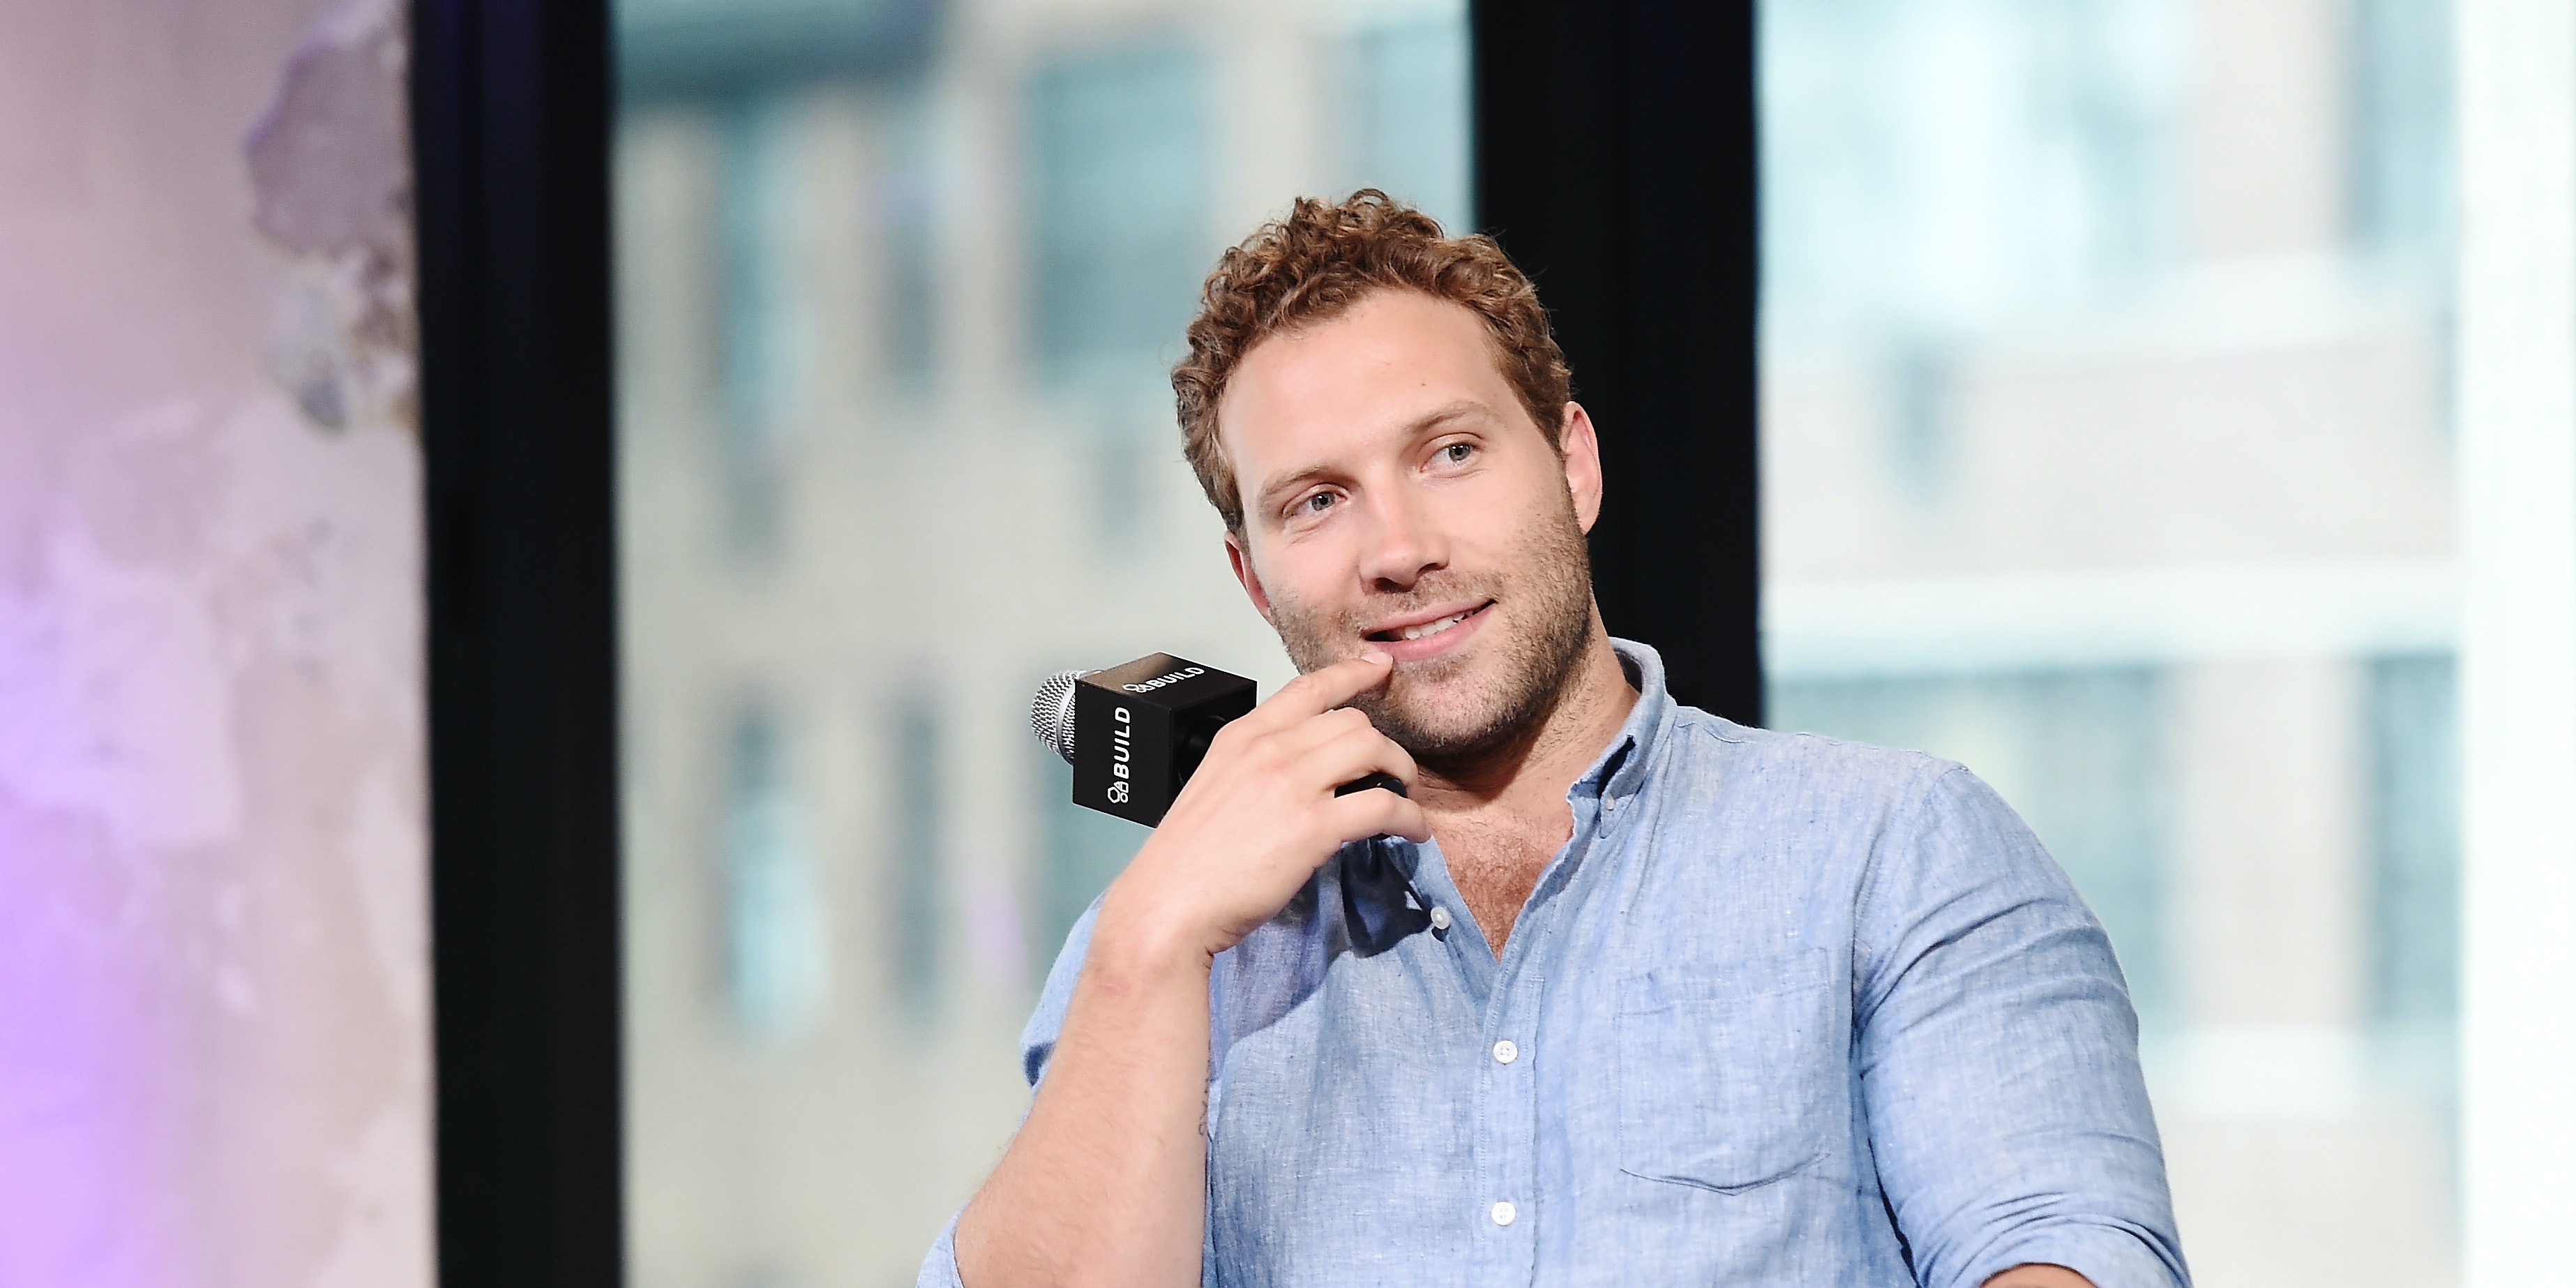 NEW YORK, NY - JULY 28:  Jai Courtney attends the AOL Build Speaker Series to discuss 'Suicide Squad' at AOL HQ on July 28, 2016 in New York City.  (Photo by Nicholas Hunt/Getty Images)